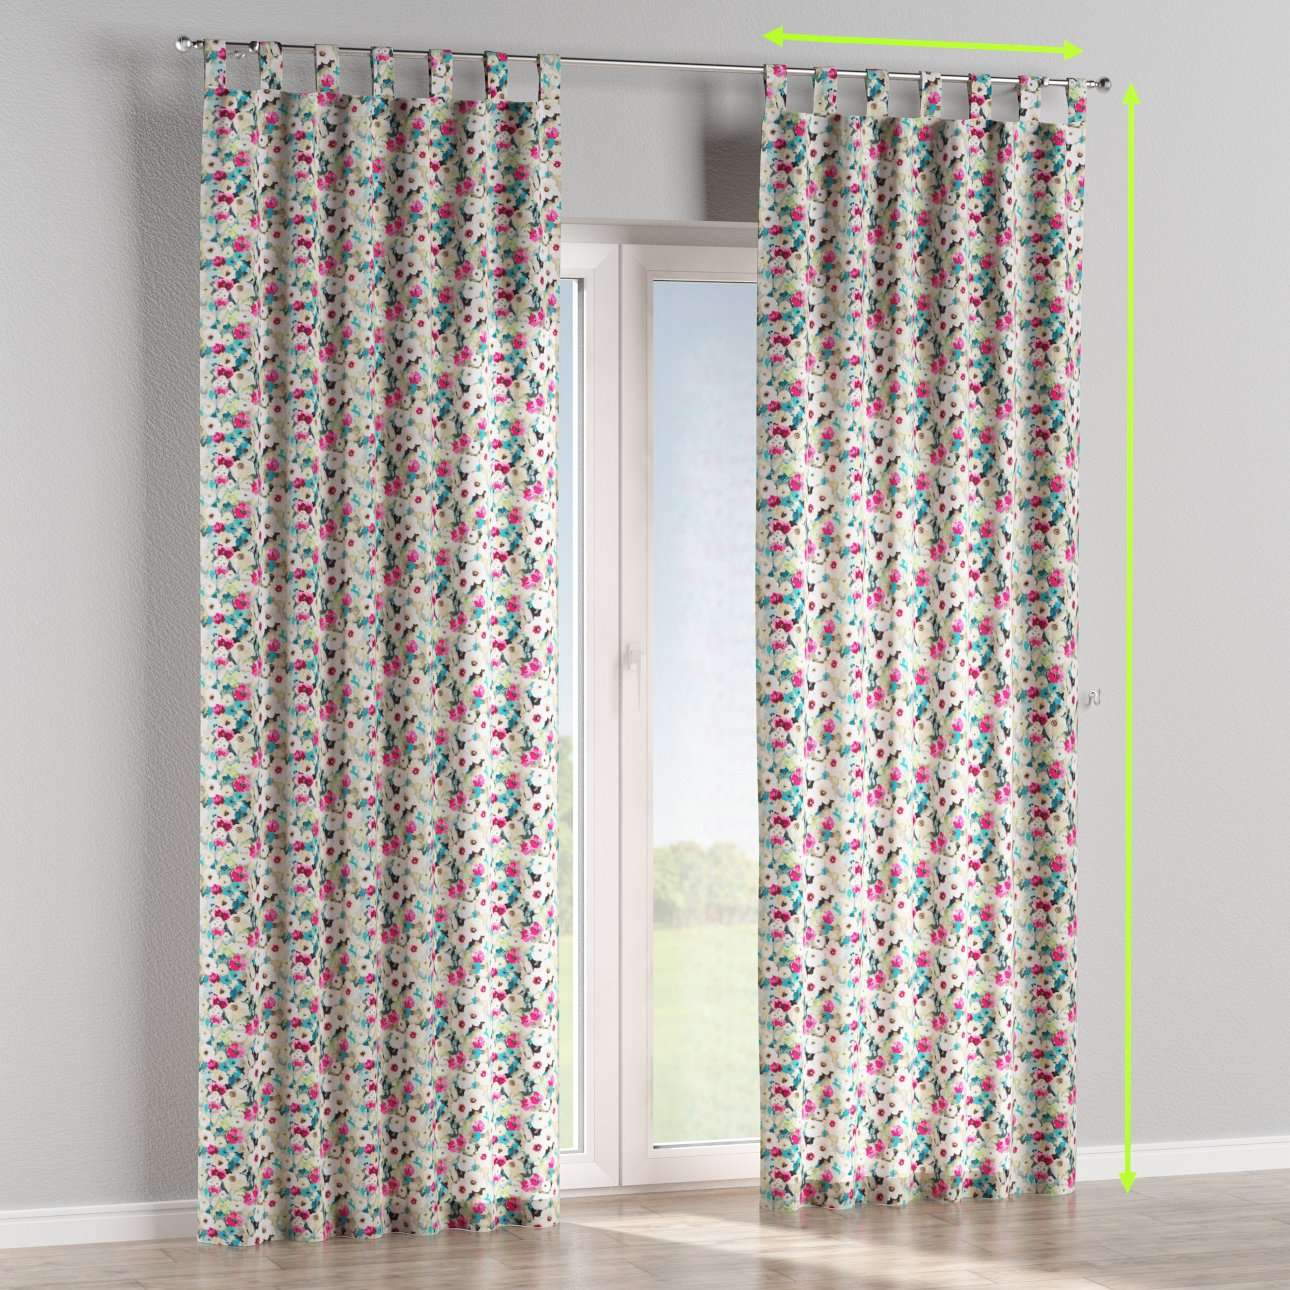 Tab top lined curtains in collection Monet, fabric: 140-10